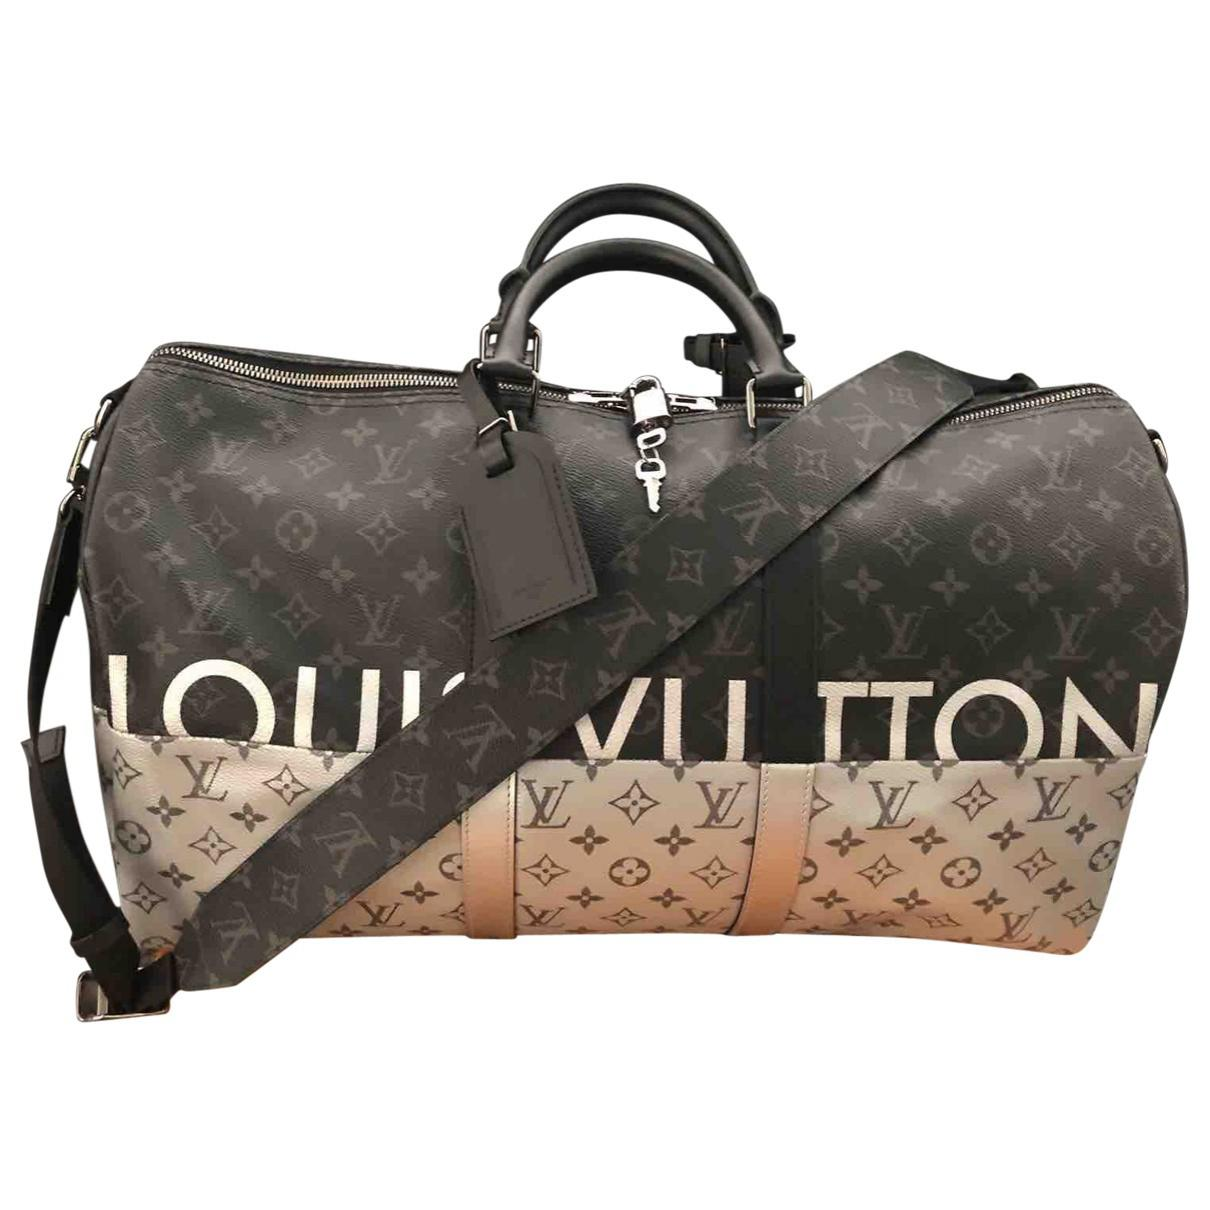 39e994c74cca Lyst - Louis Vuitton Keepall Leather Travel Bag in Black